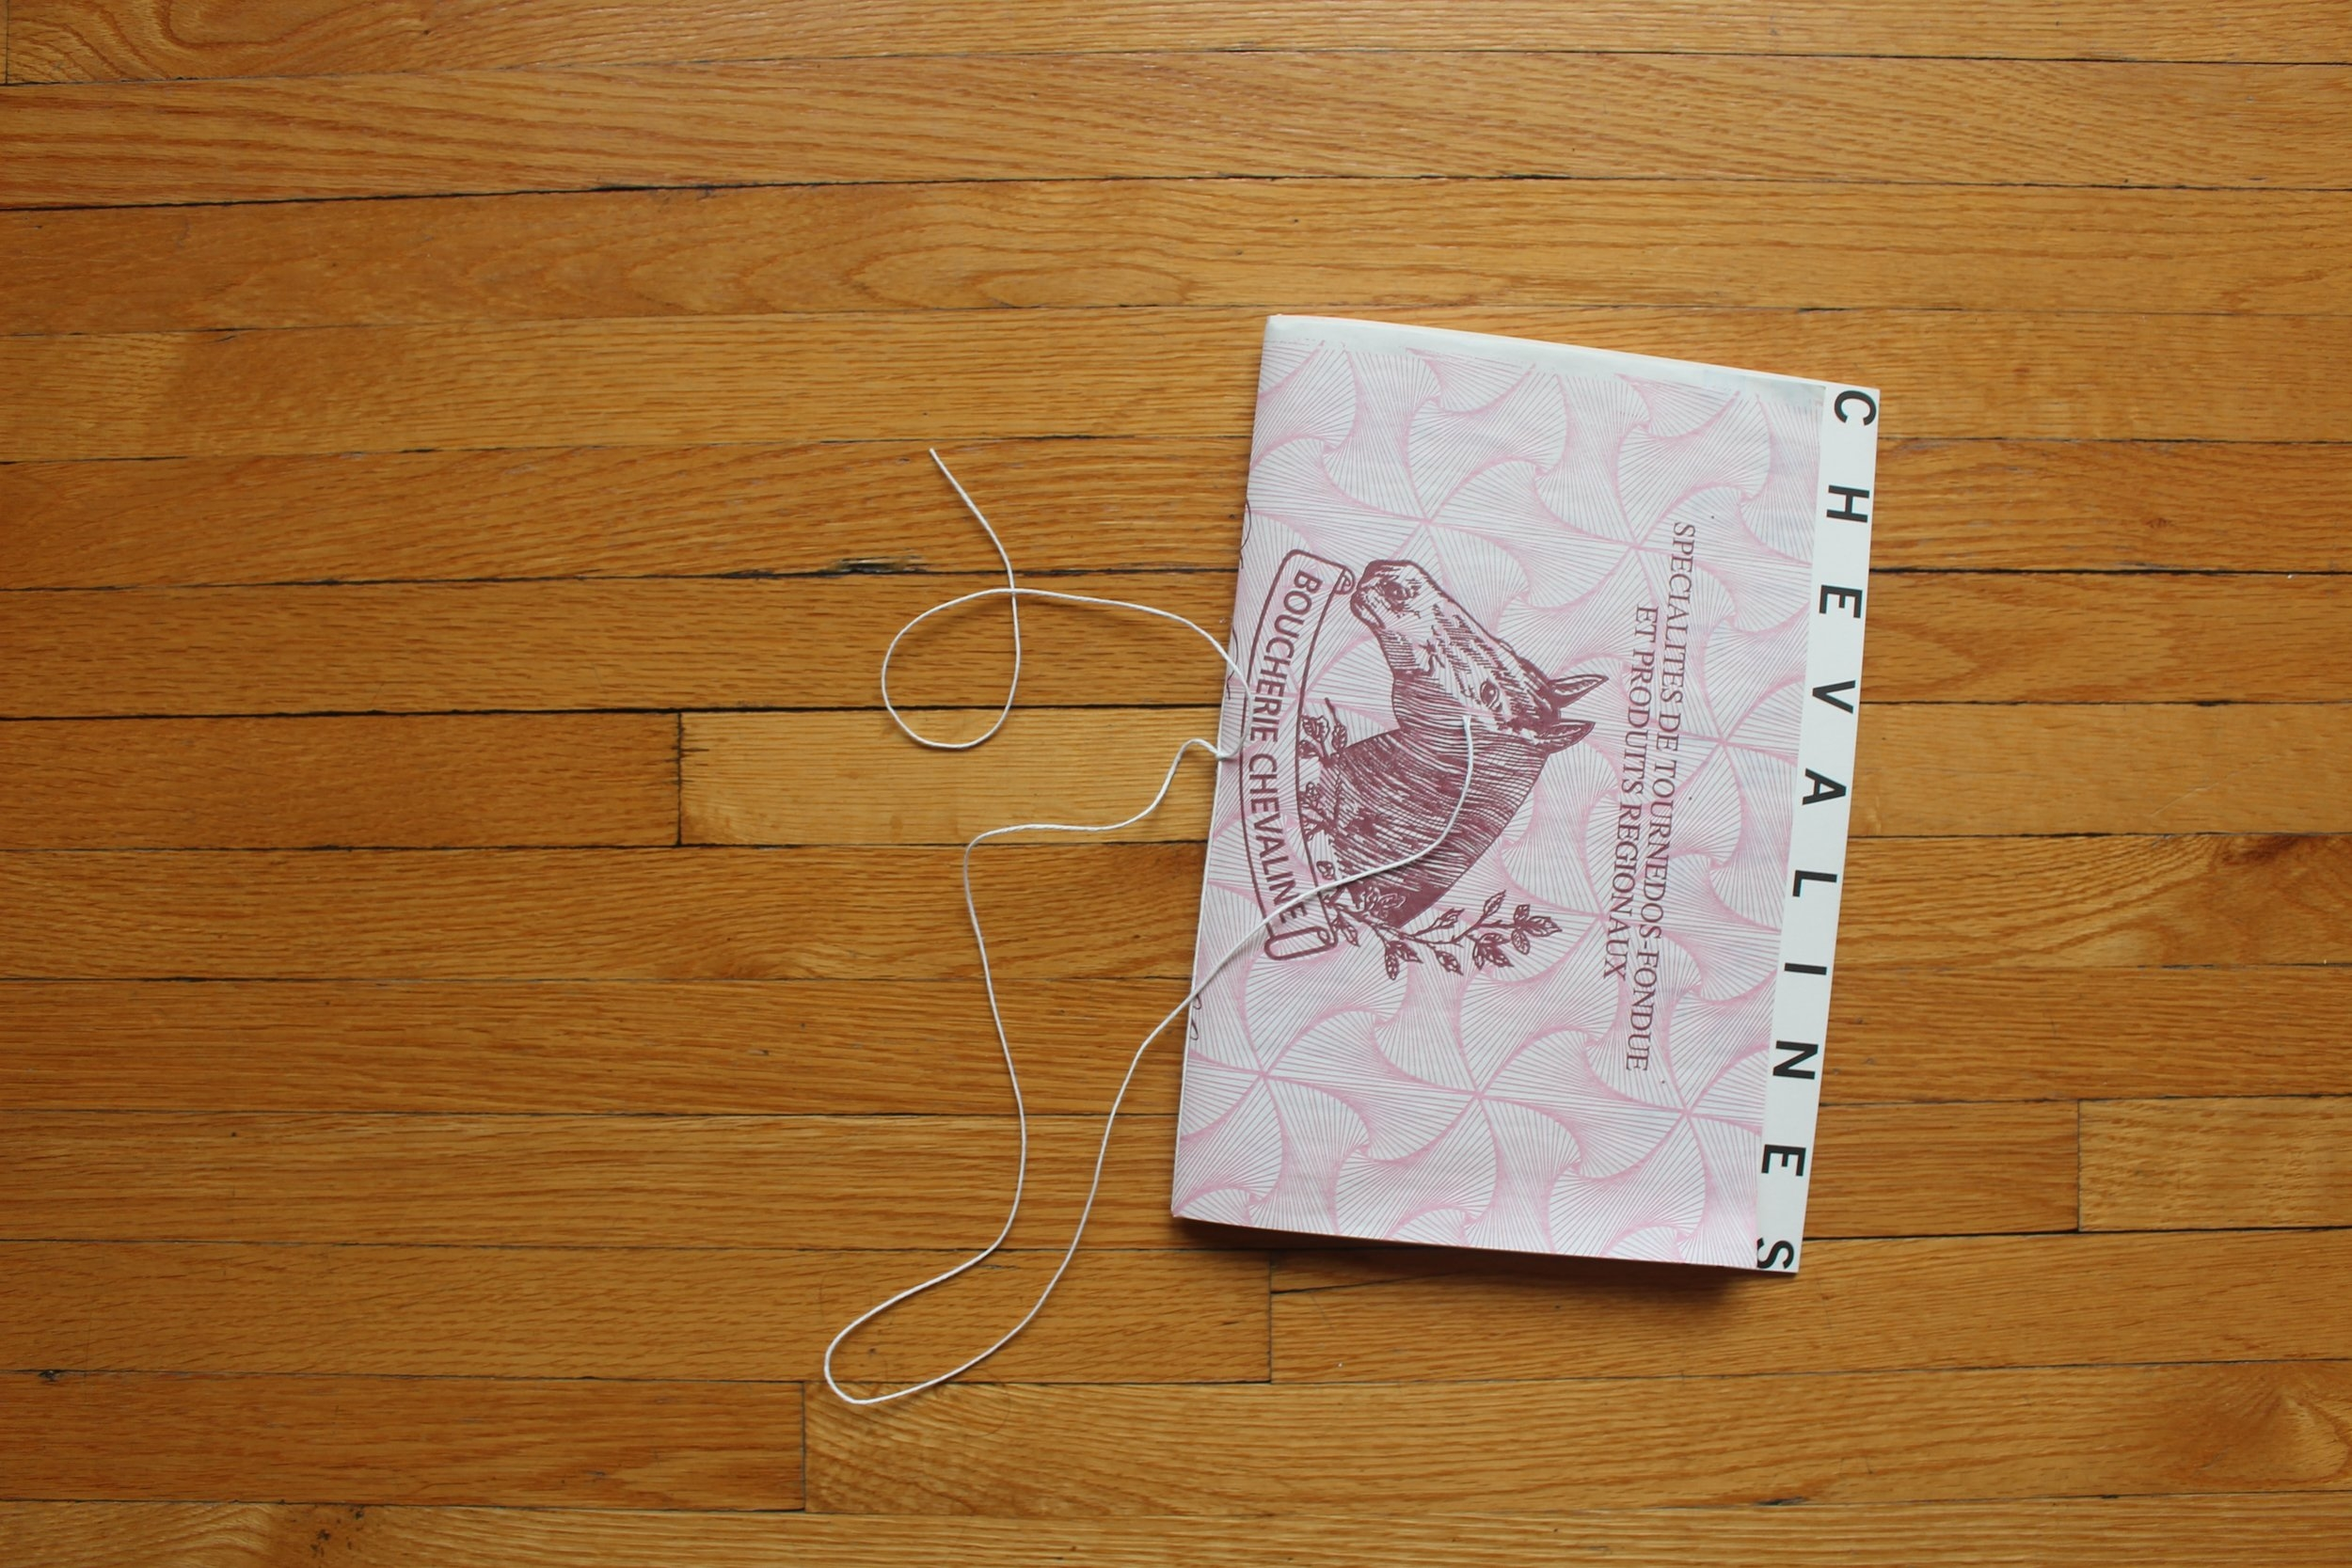 The Cover, made with horse butcher paper and string